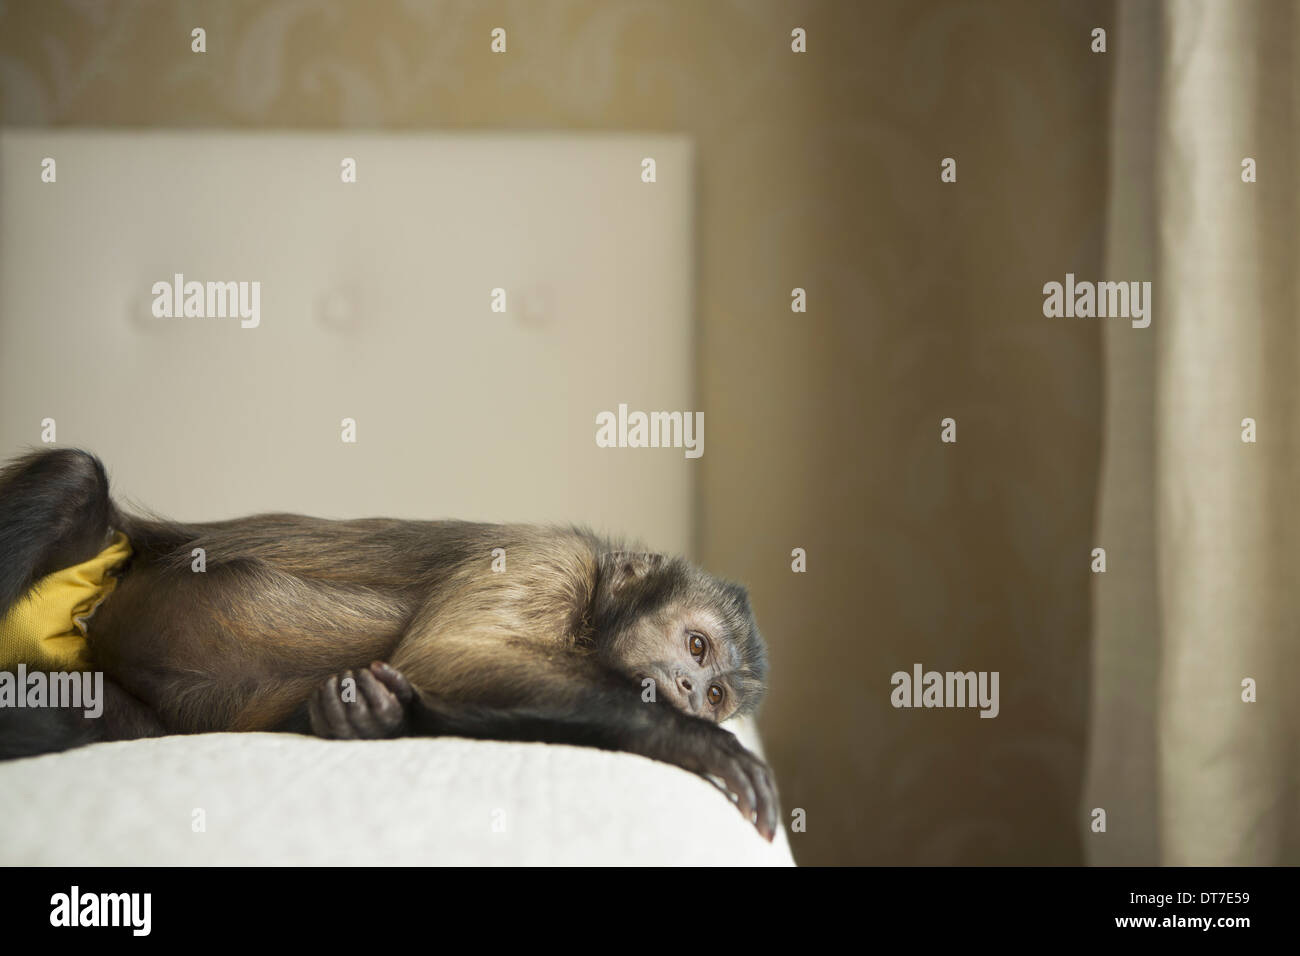 A capuchin monkey lying on his side on a bed Austin Texas USA - Stock Image